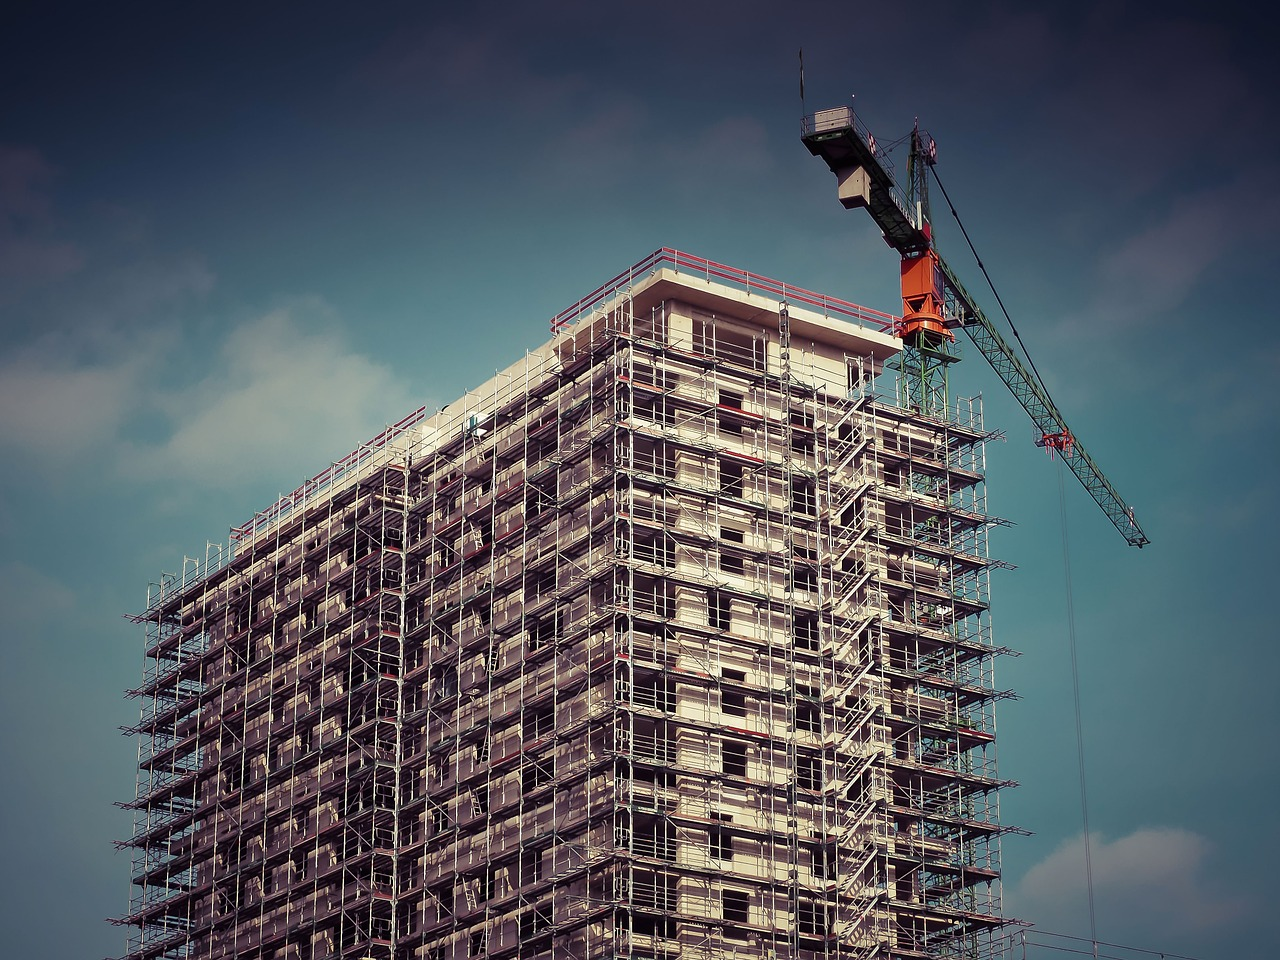 3 Reasons to Be Upbeat About the Future of the American Construction Industry